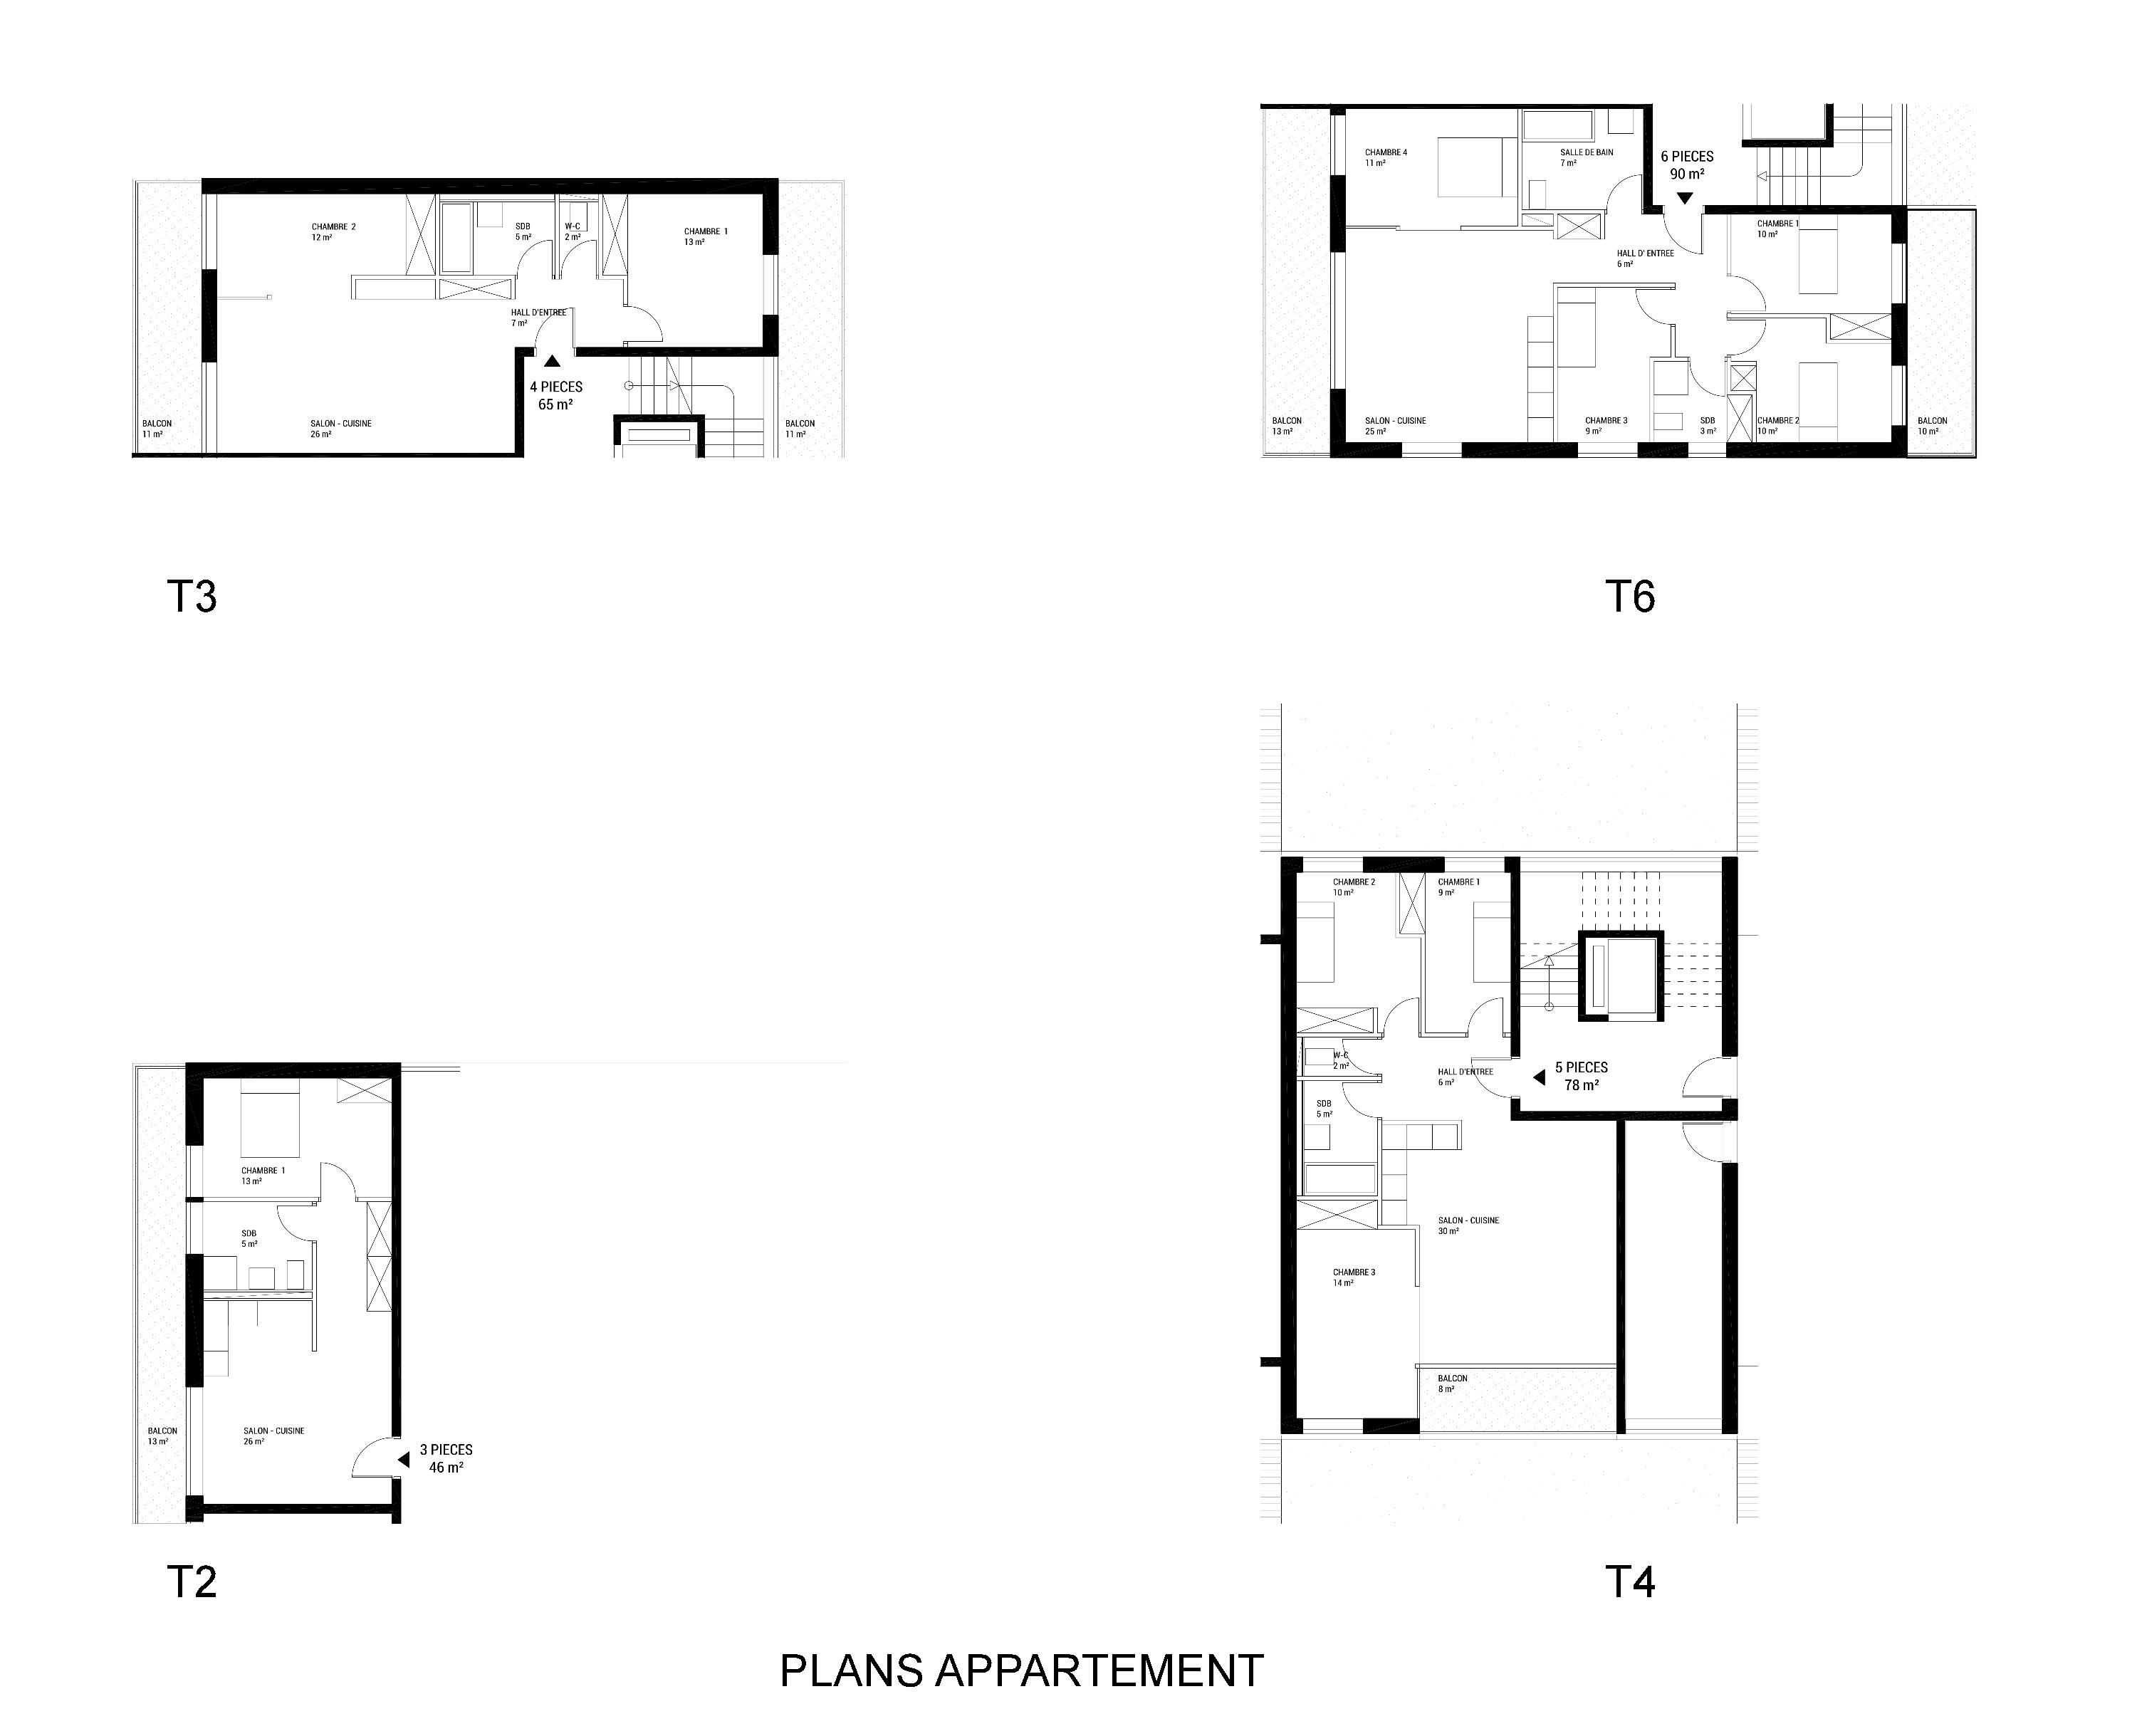 08_THO_PlanAppartement-page-001